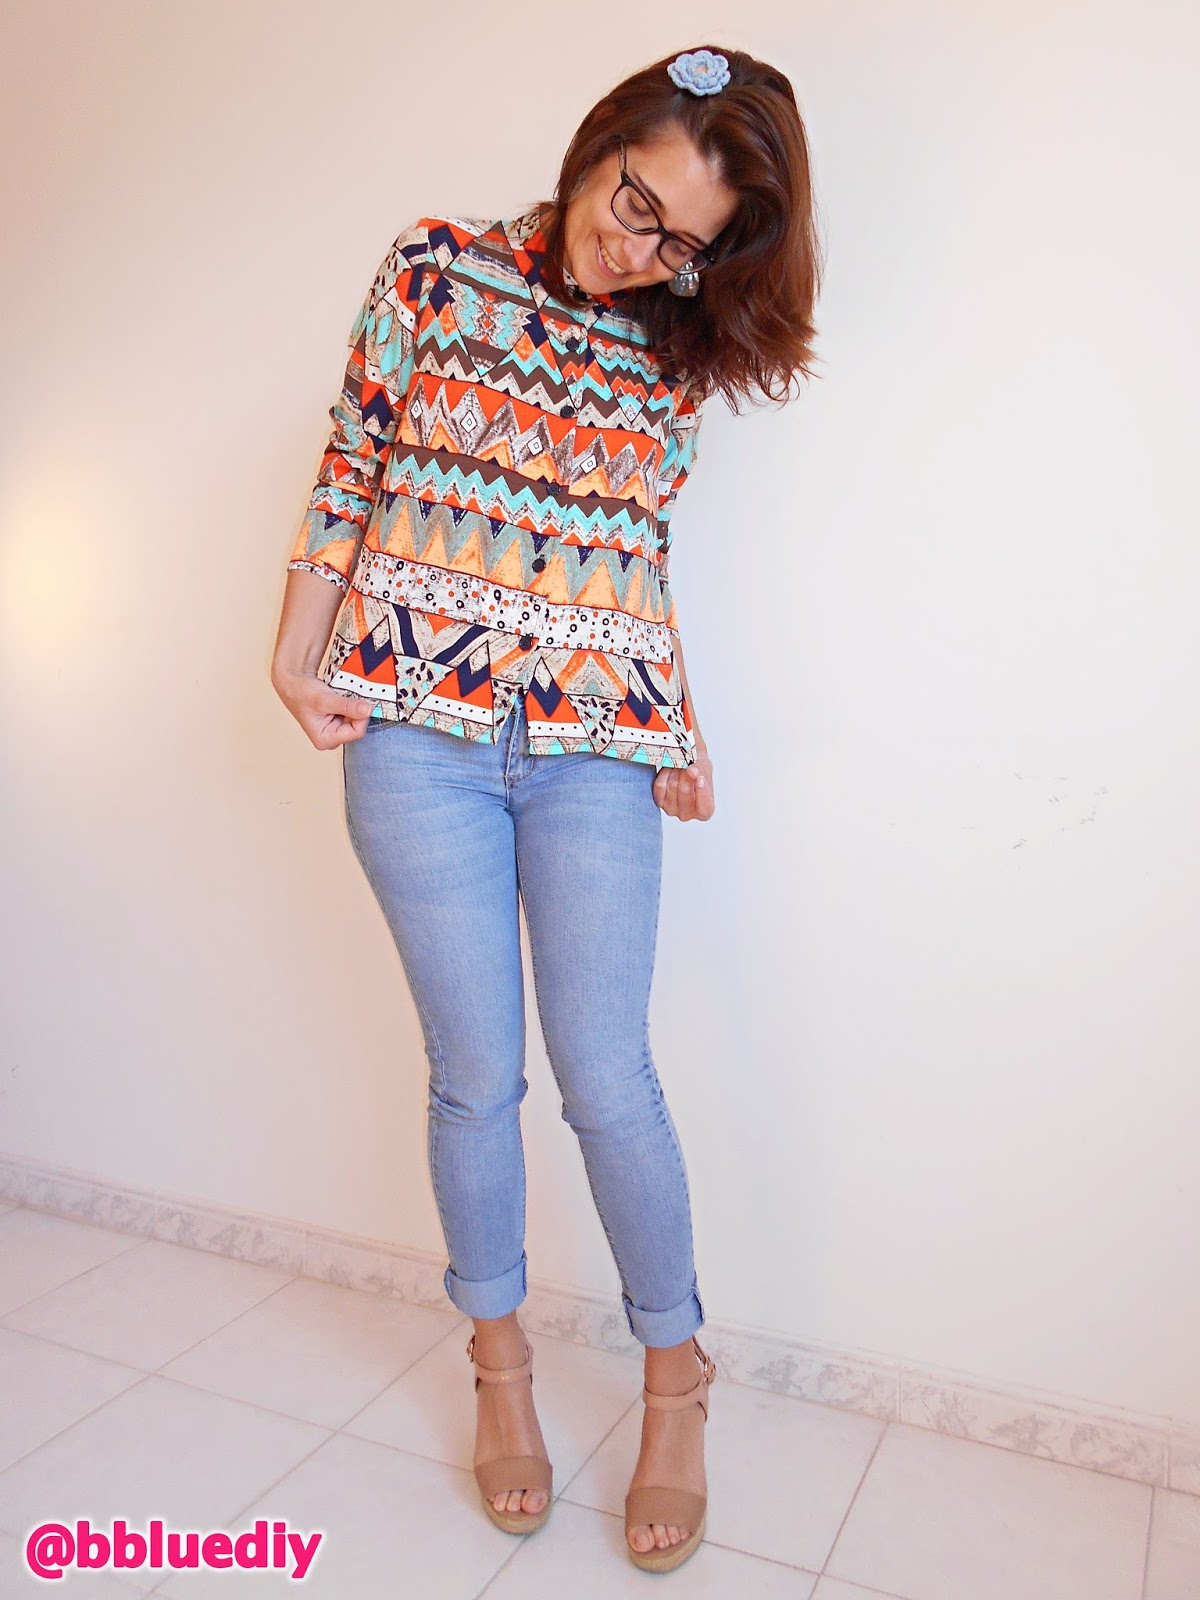 Blusa con patrón / Blouse with pattern